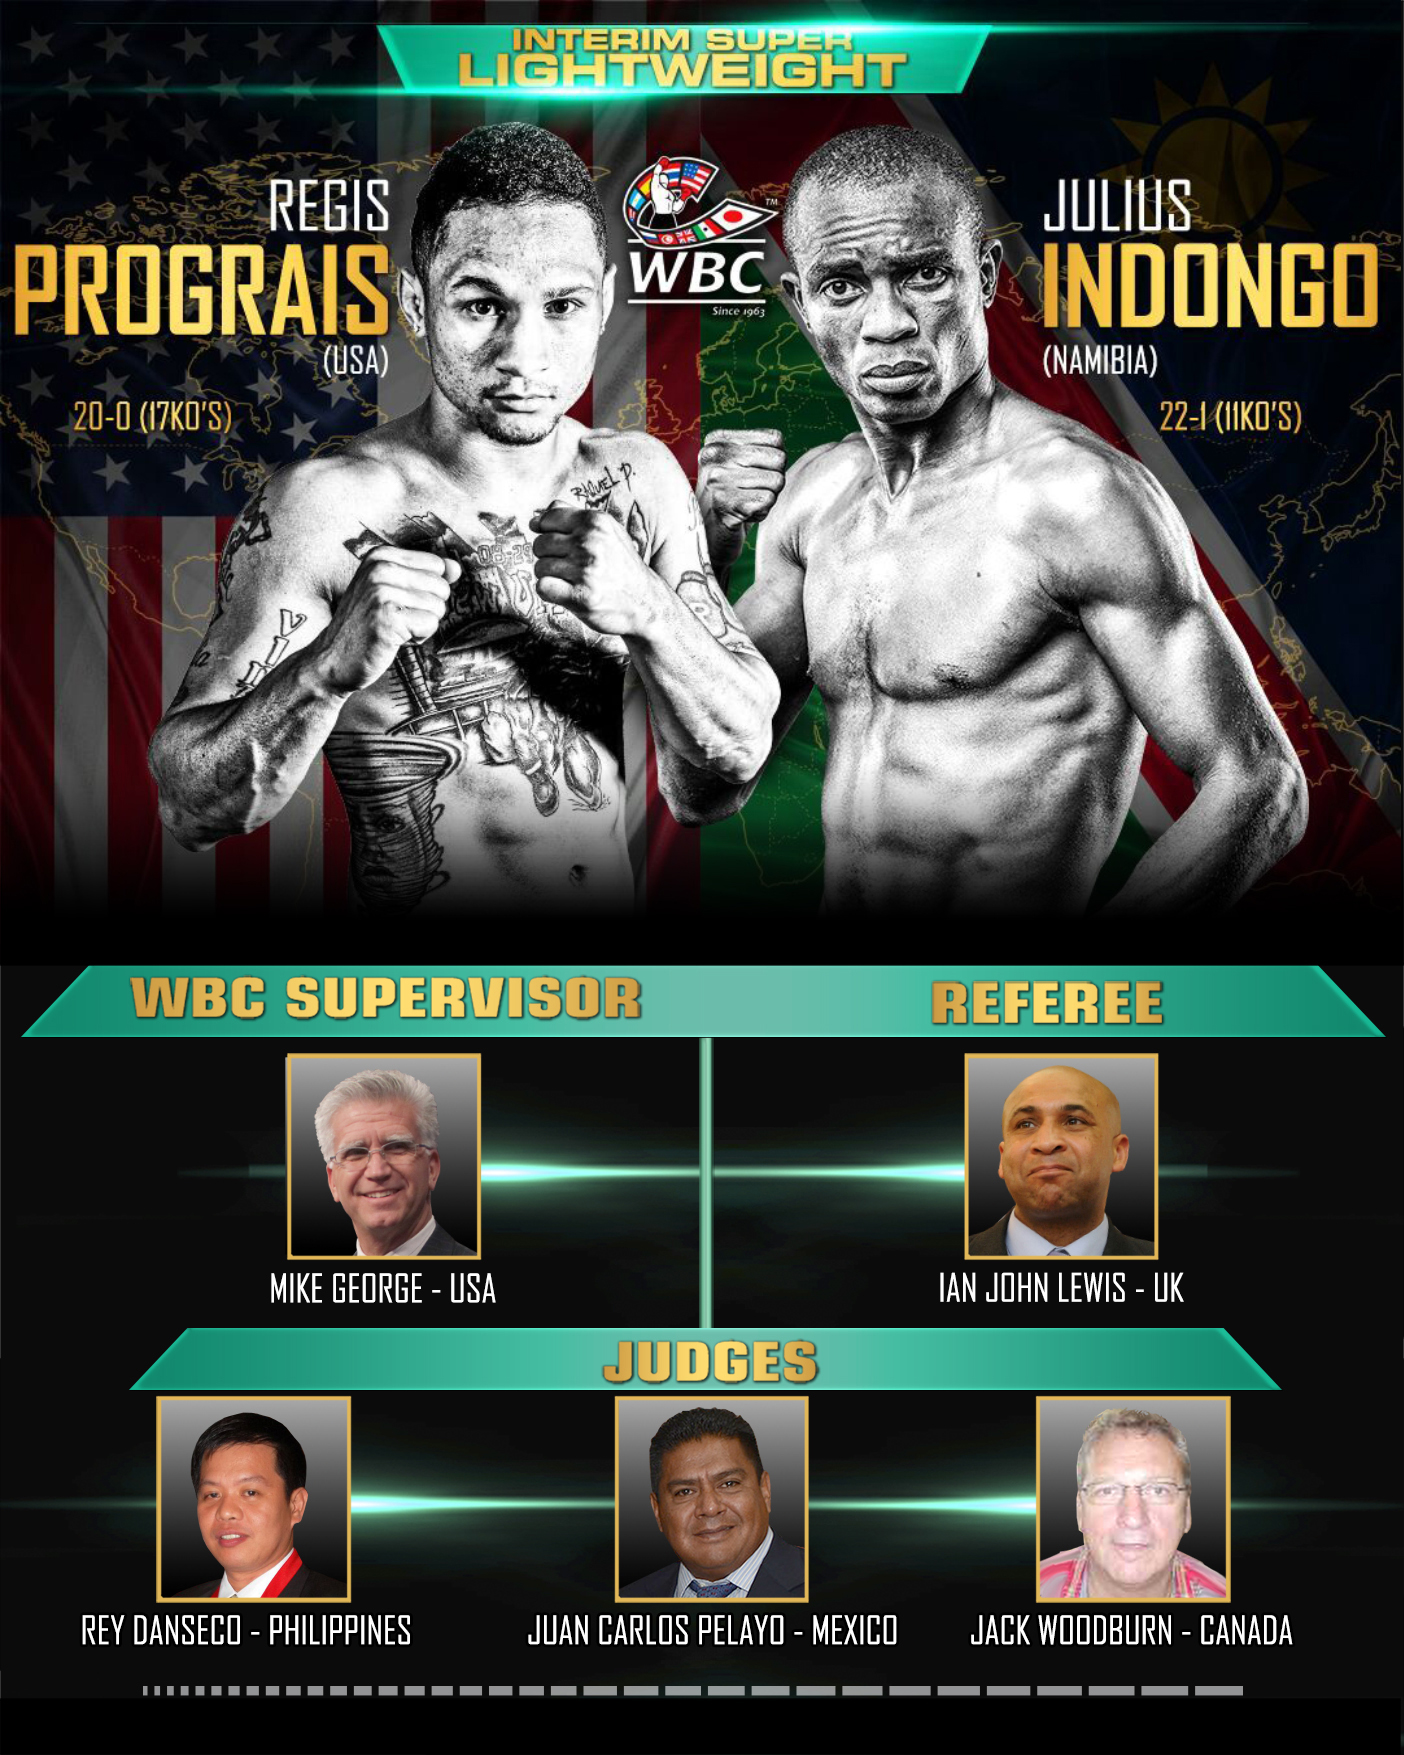 PROGRAIS-VS-INDONGO-10MAR2018